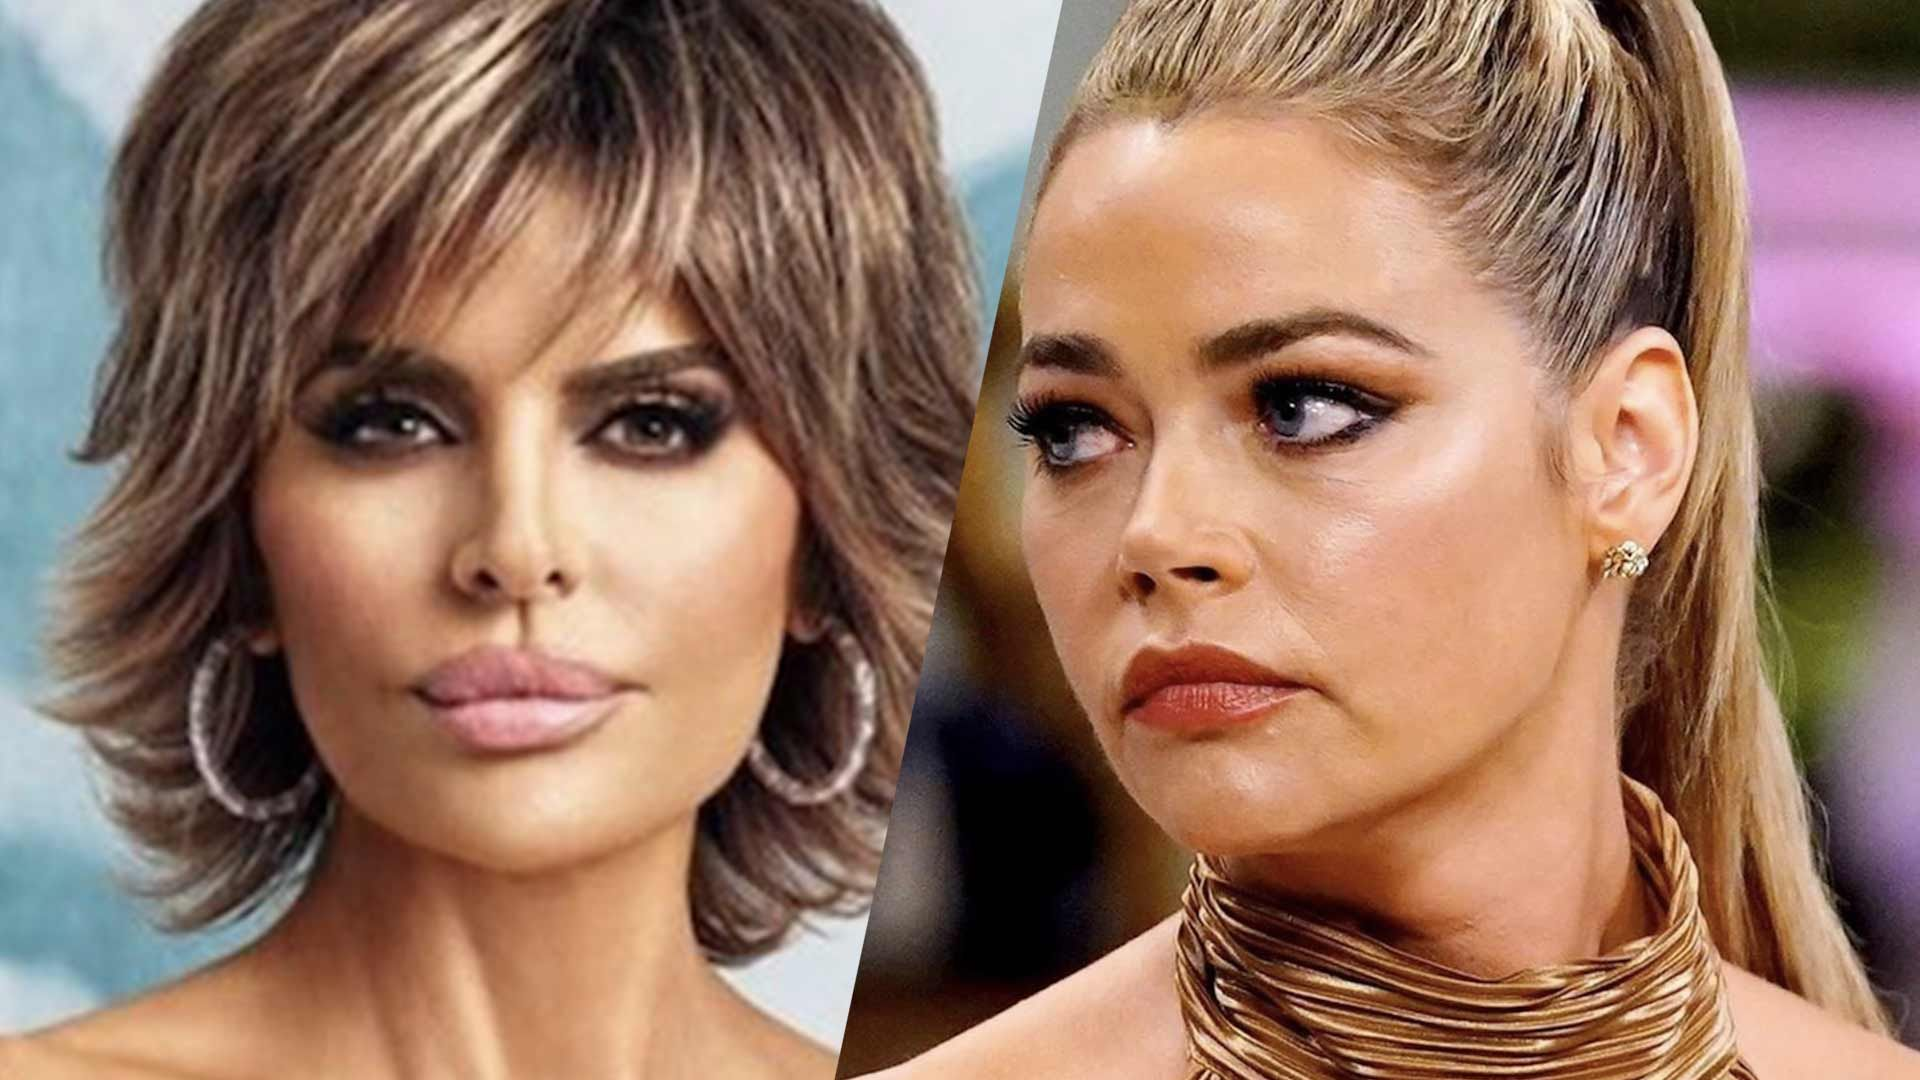 denise-richards-wants-to-fix-things-with-lisa-rinna-after-fallout-but-needs-the-other-rhobh-star-to-apologize-first-source-says